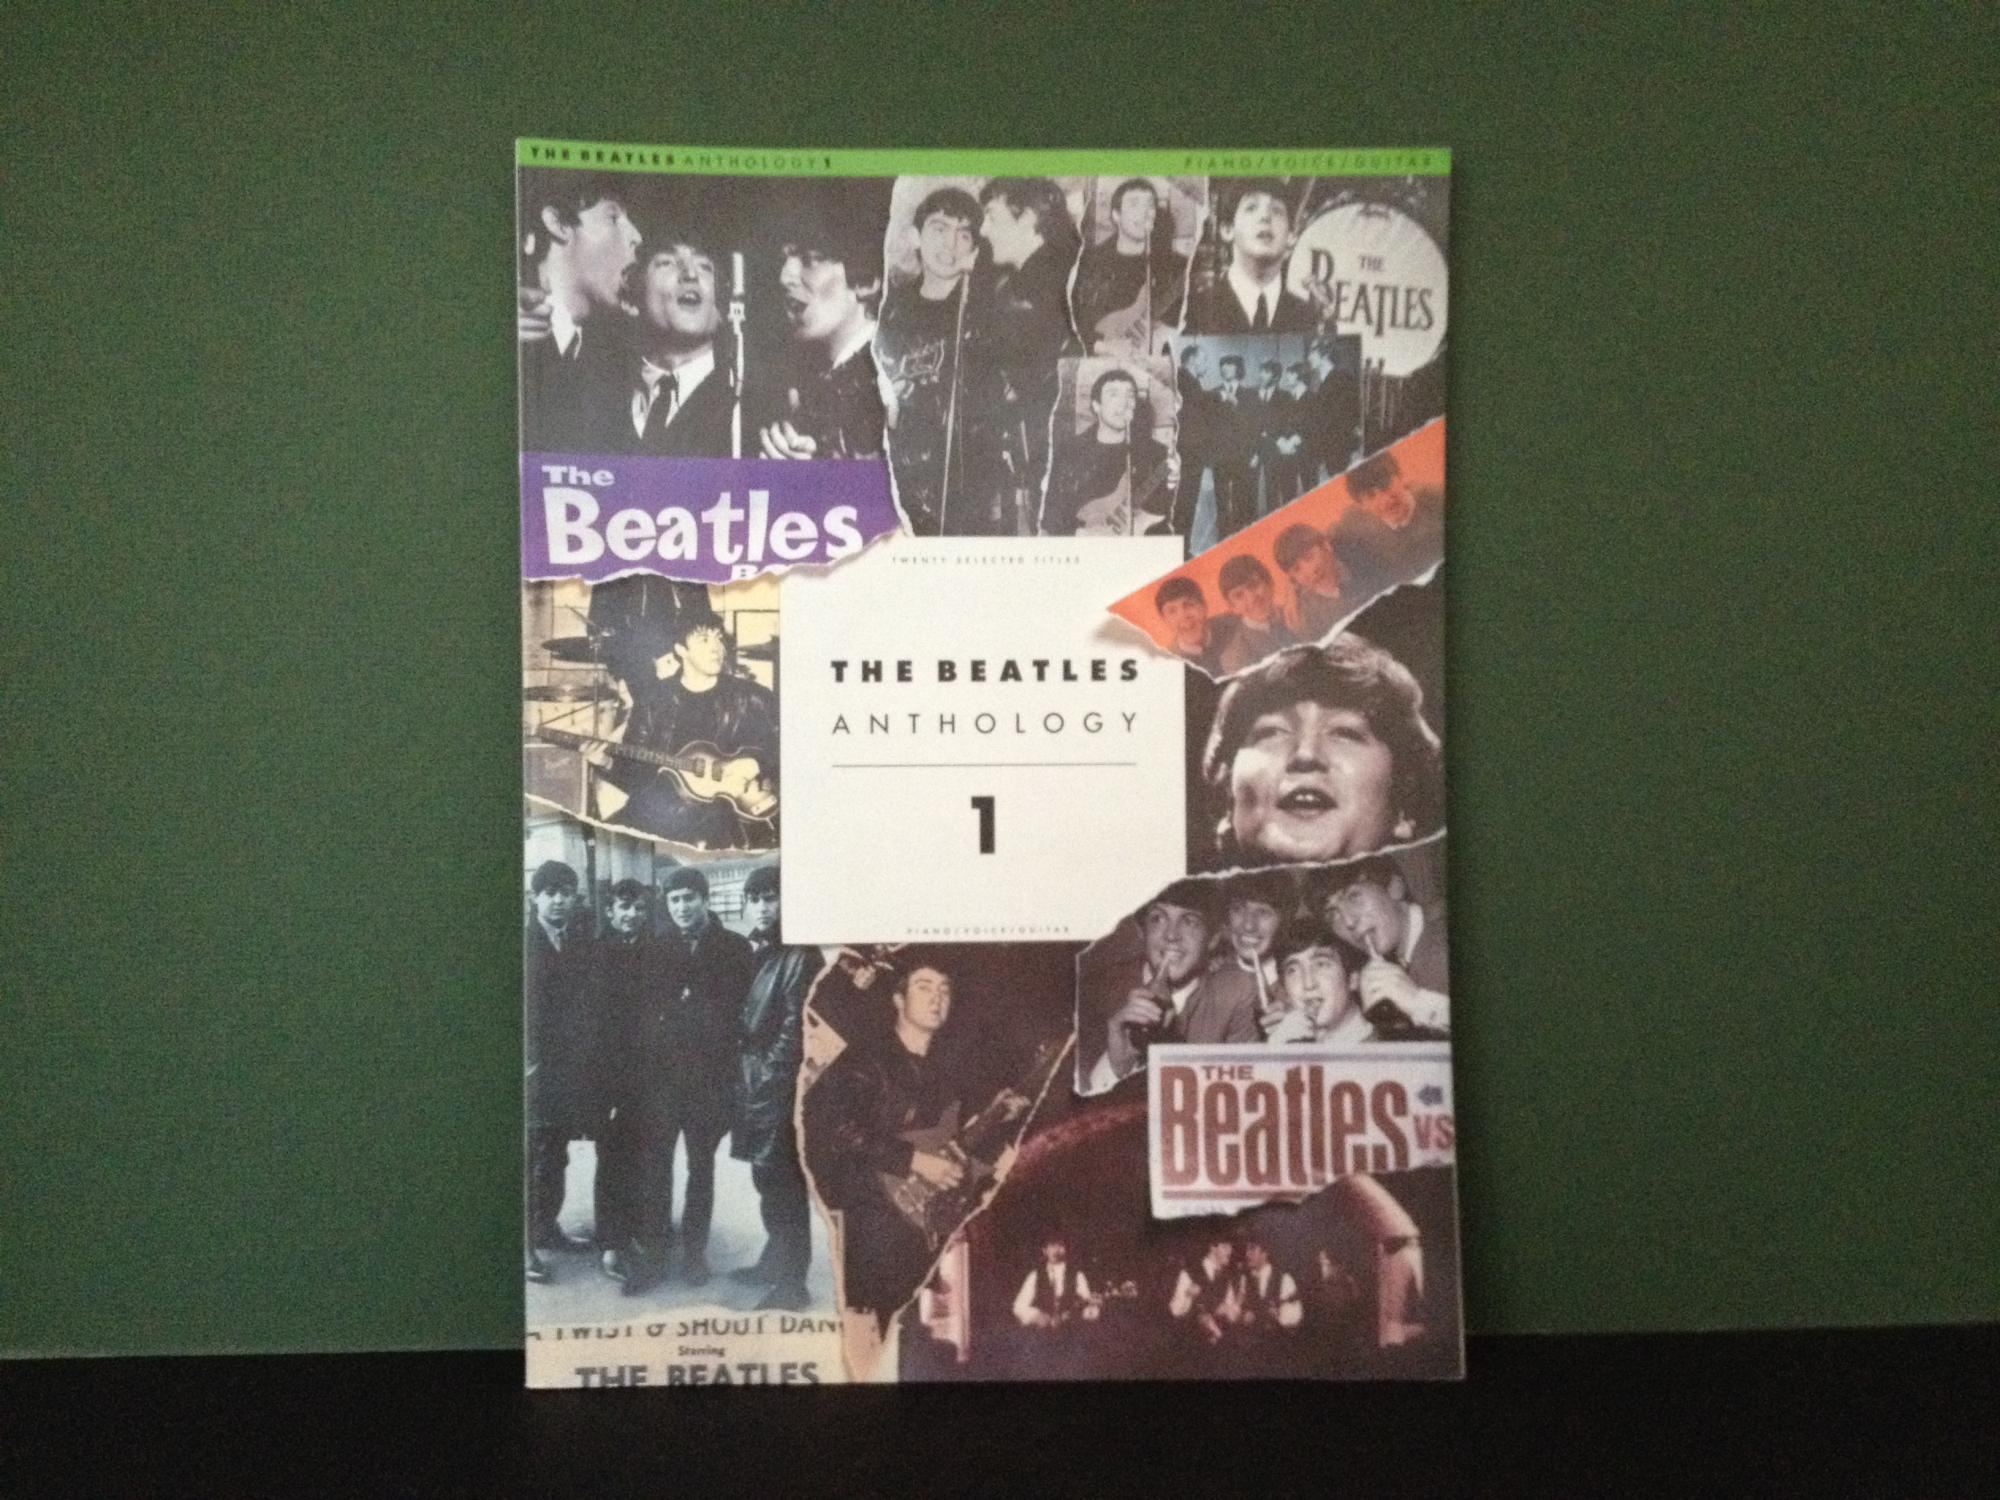 The Beatles Anthology 1 - Twenty Selected